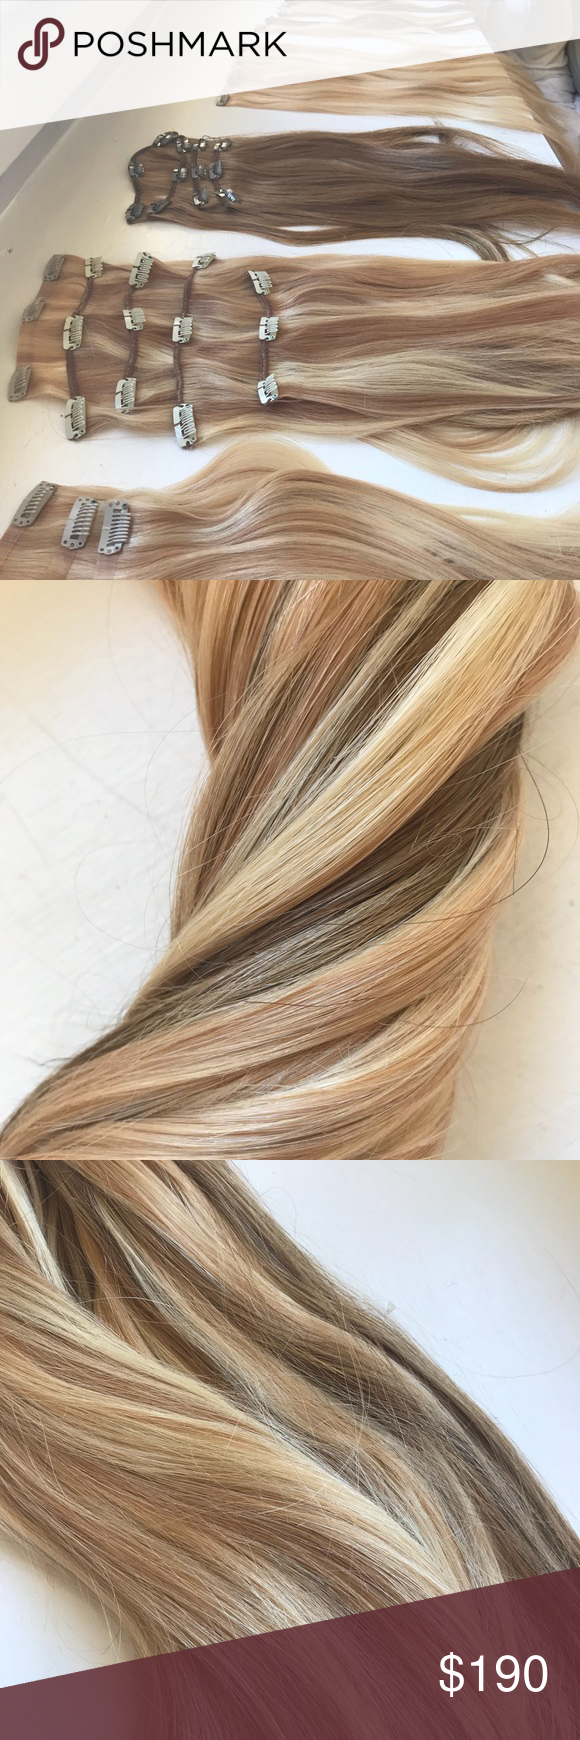 Multicolored Blonde Hairextensions Bellami Sallys My Posh Picks